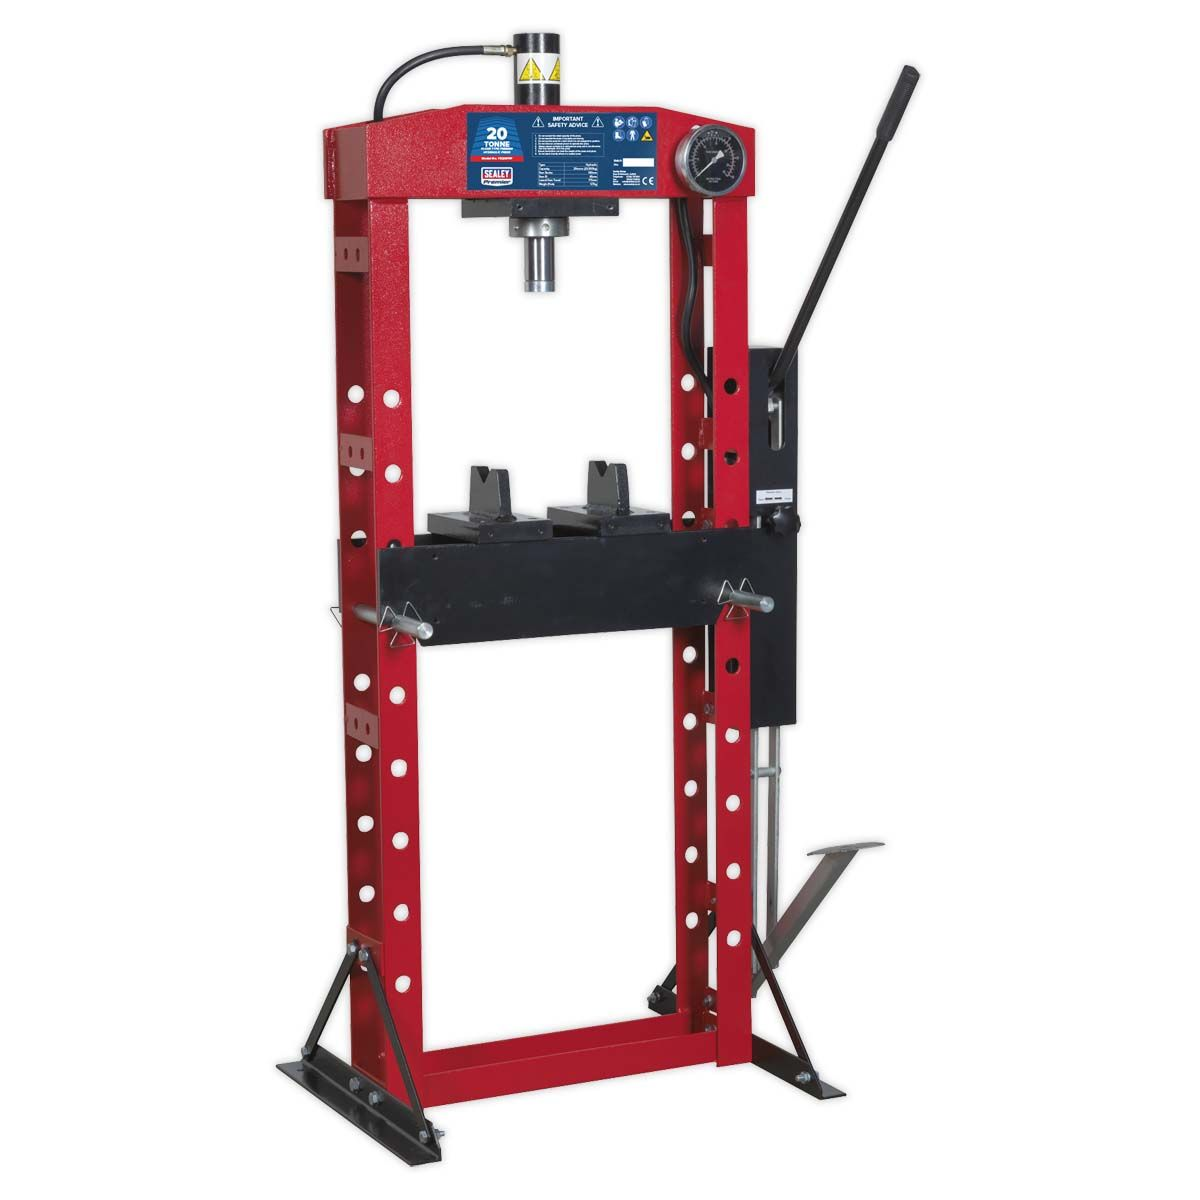 Sealey Hydraulic Press Premier 20tonne Floor Type with Foot Pedal